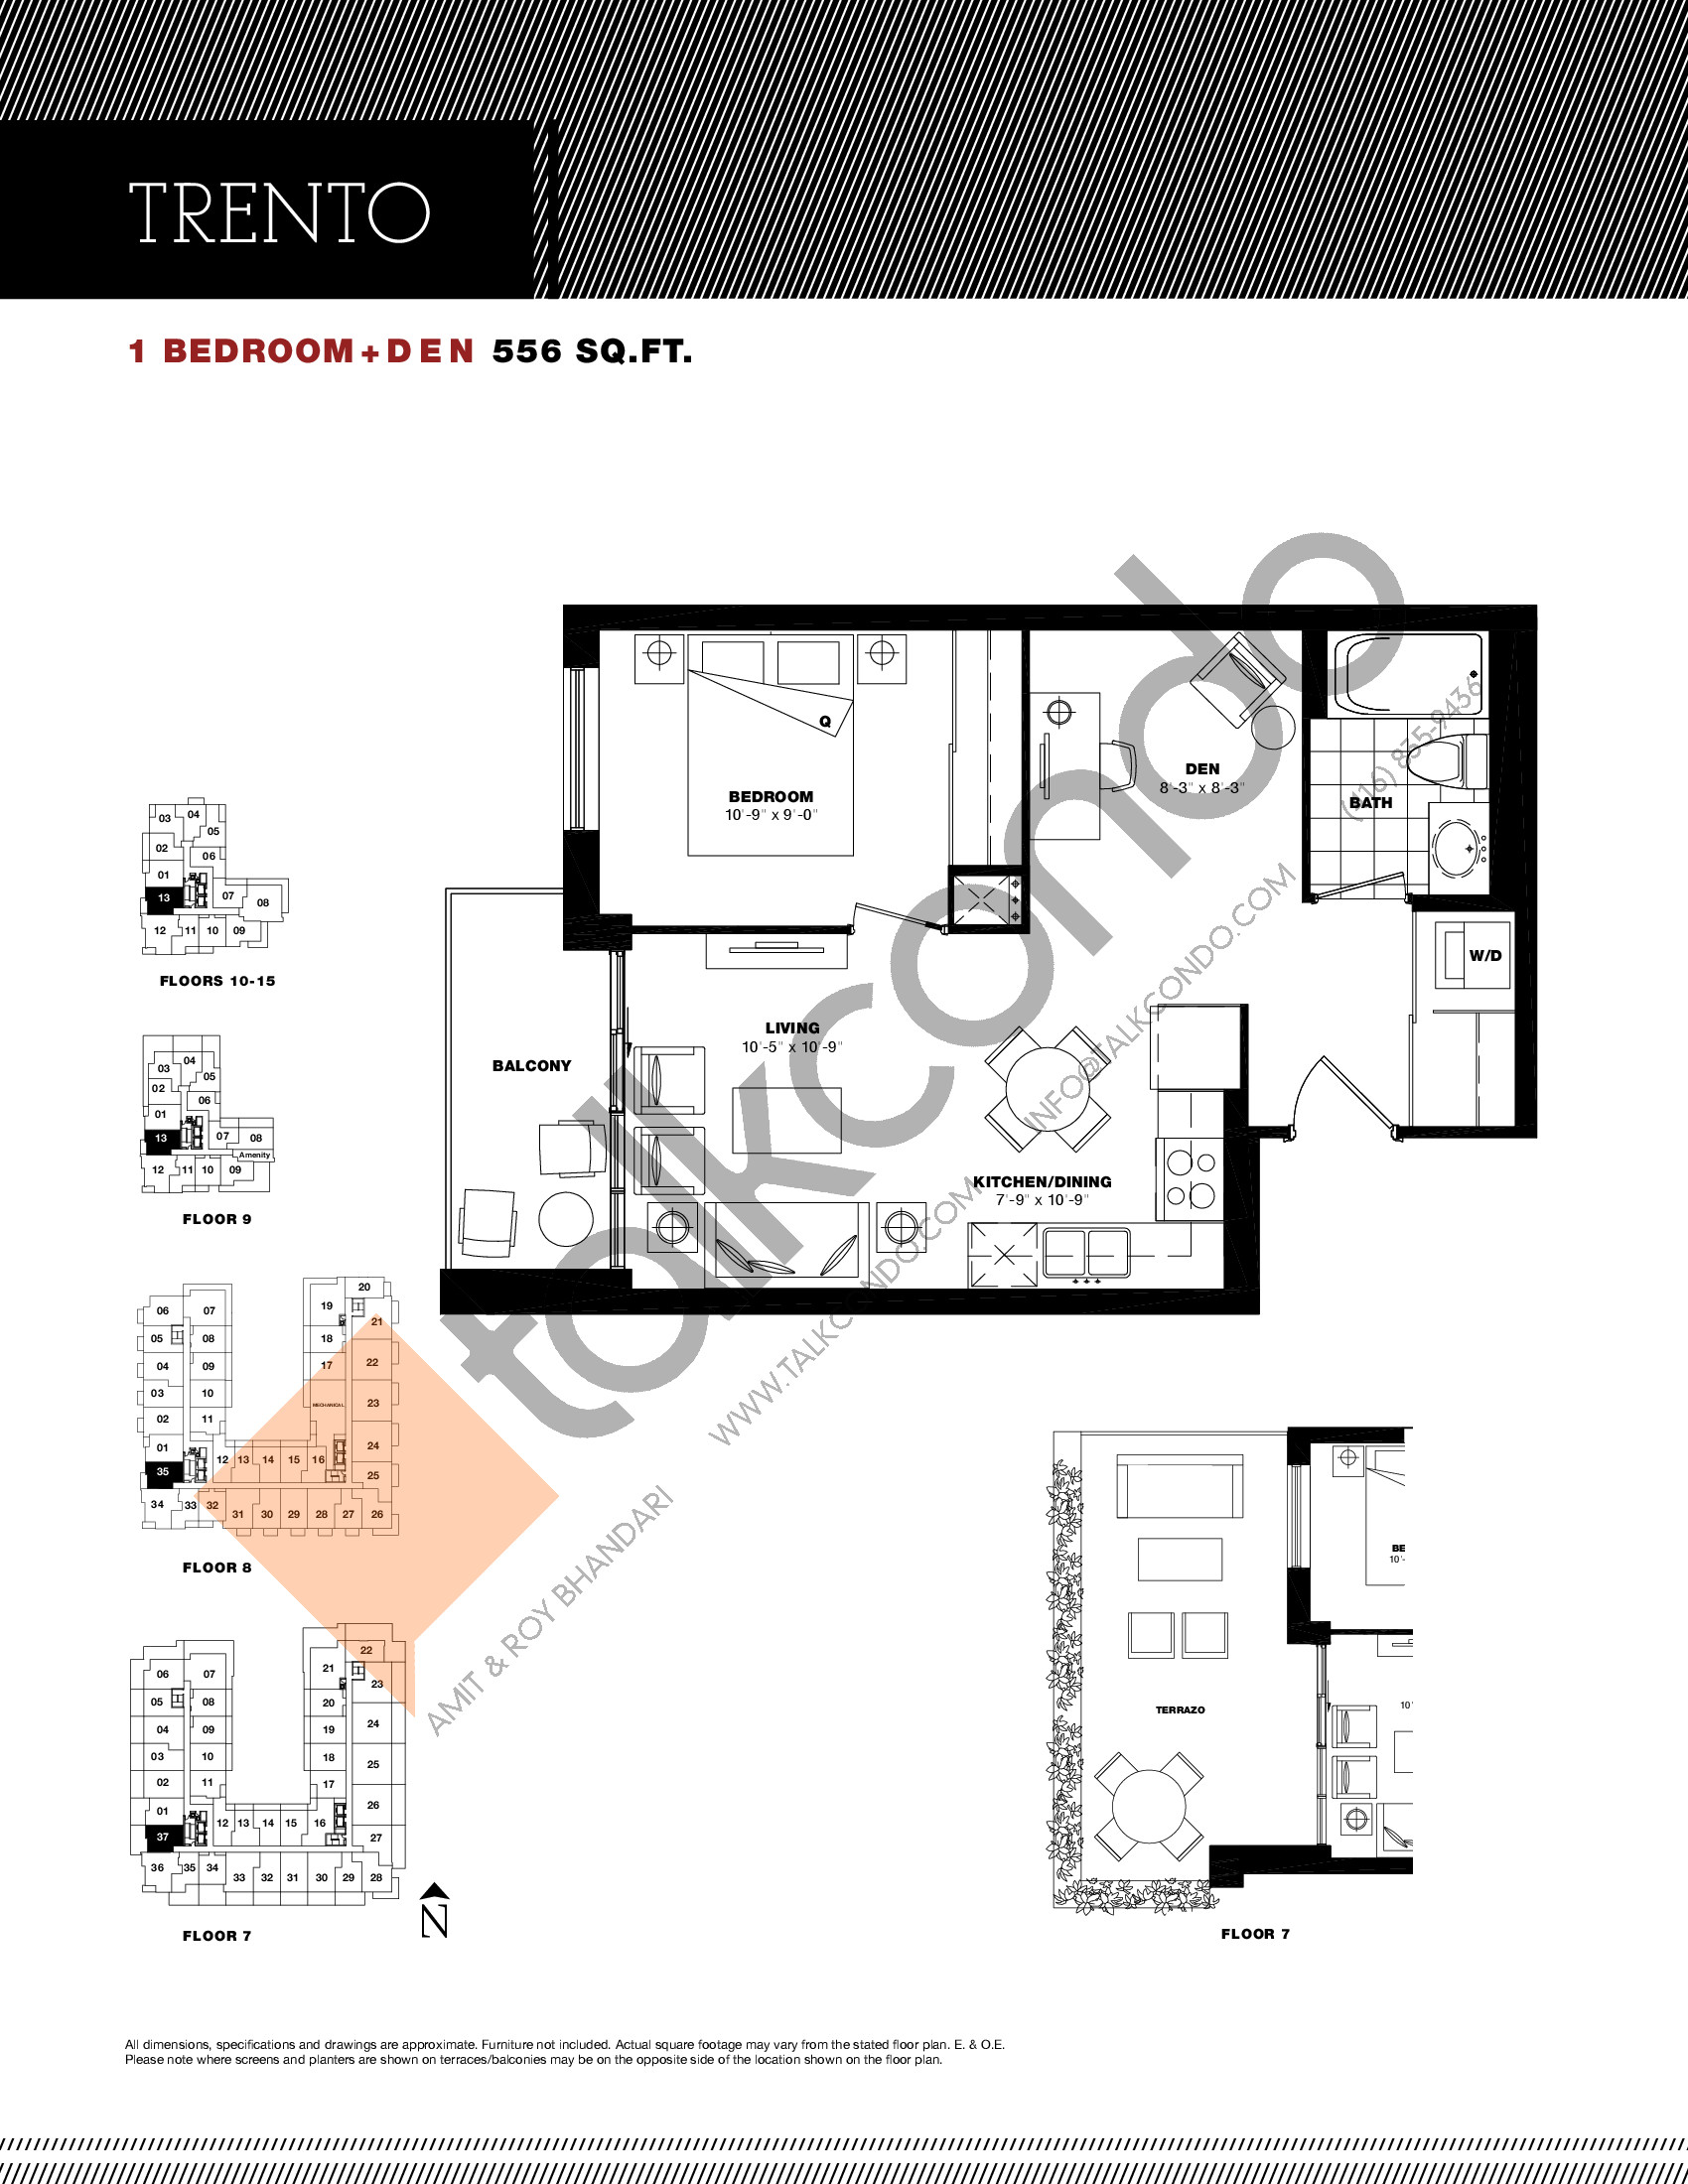 Trento Floor Plan at Residenze Palazzo at Treviso 3 Condos - 556 sq.ft